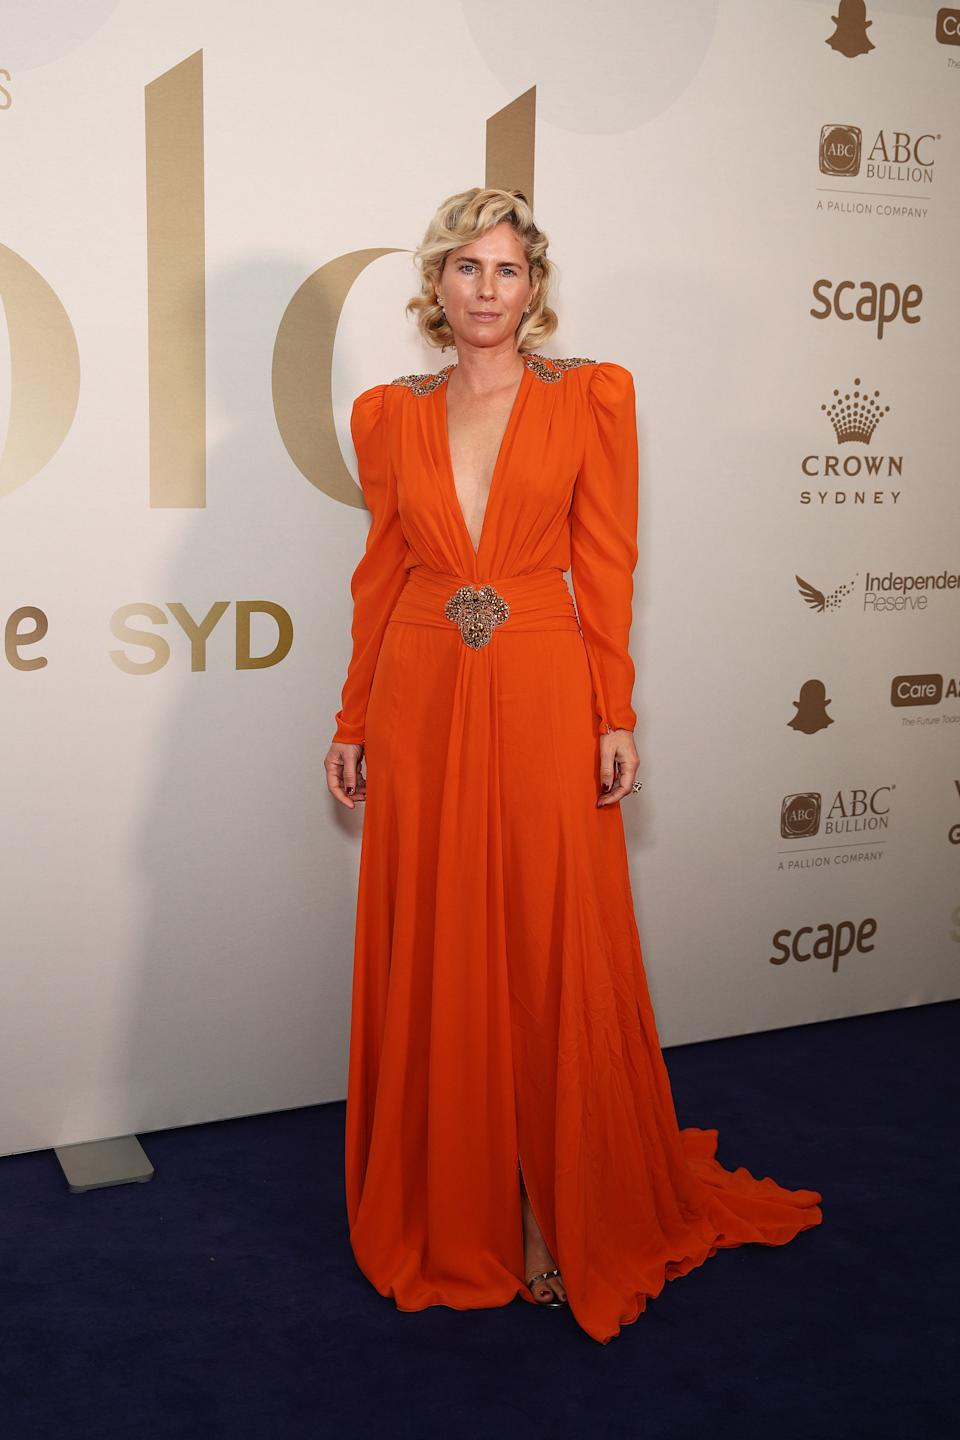 Sarah Jane Clarke wears a plunging orange gown at the Gold Dinner 2021 on June 10, 2021 in Sydney, Australia